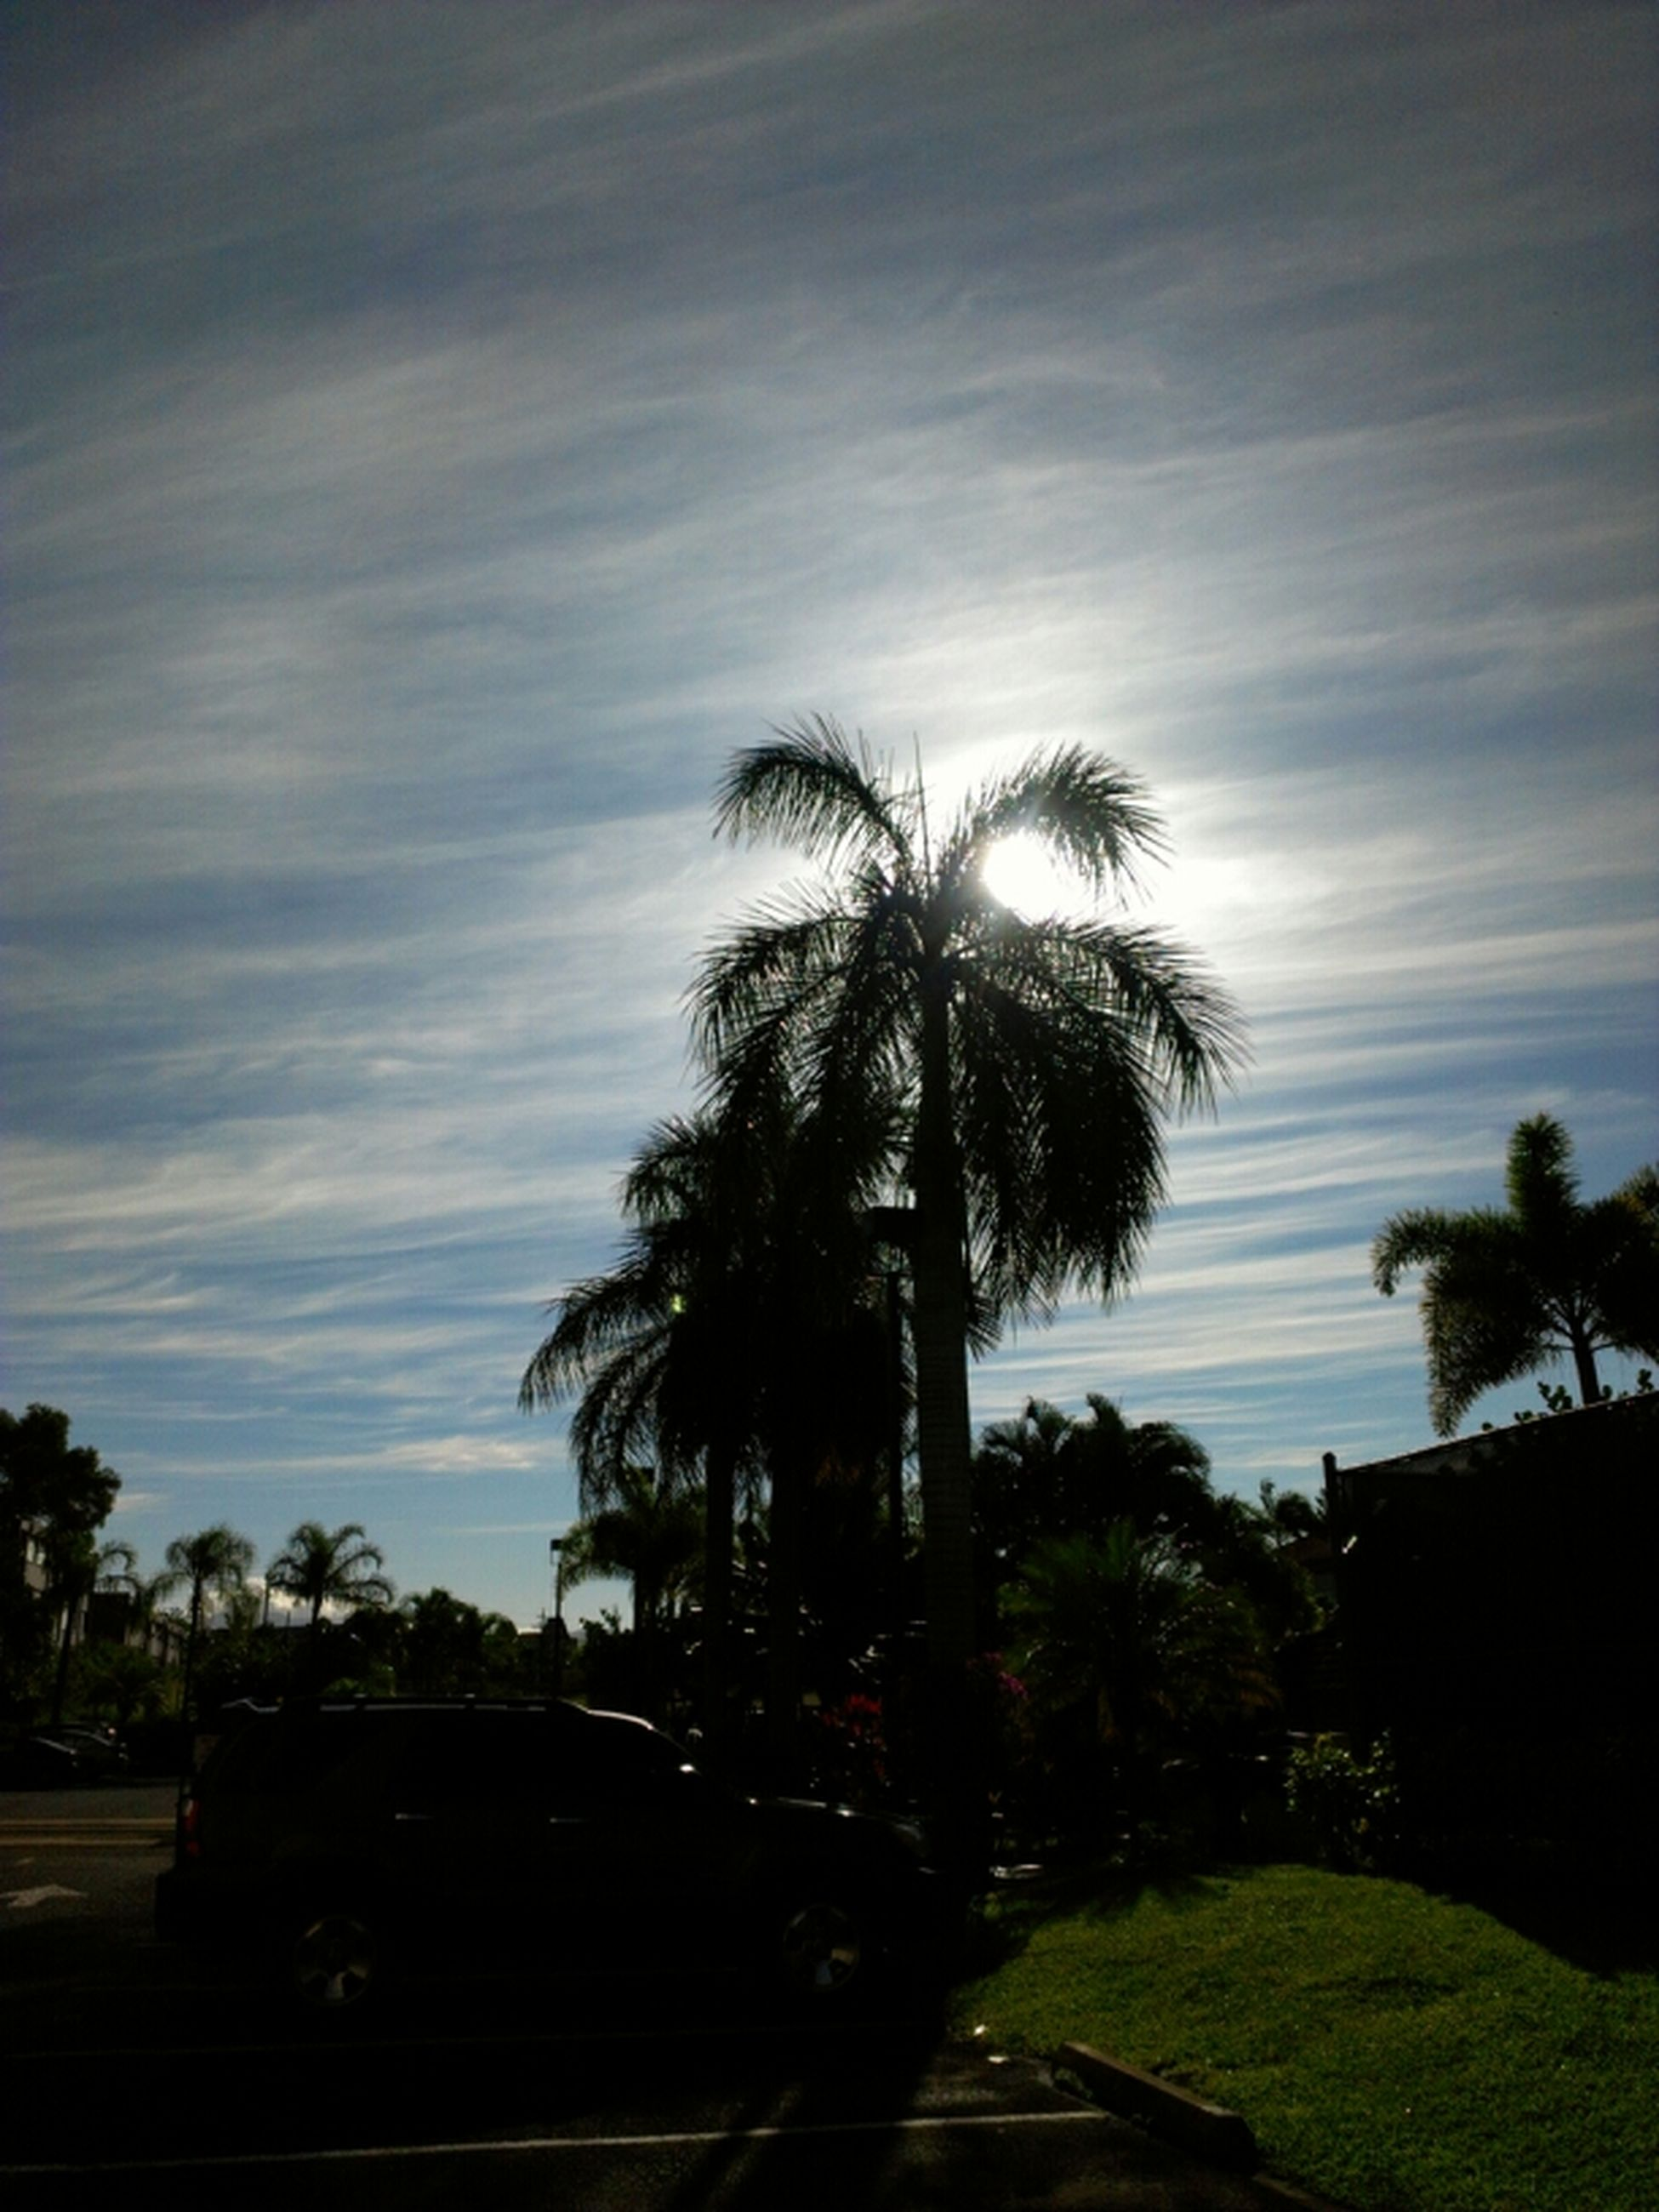 palm tree, tree, sky, tranquility, growth, tranquil scene, silhouette, nature, beauty in nature, scenics, cloud - sky, water, tree trunk, sea, no people, outdoors, landscape, cloud, sunset, road